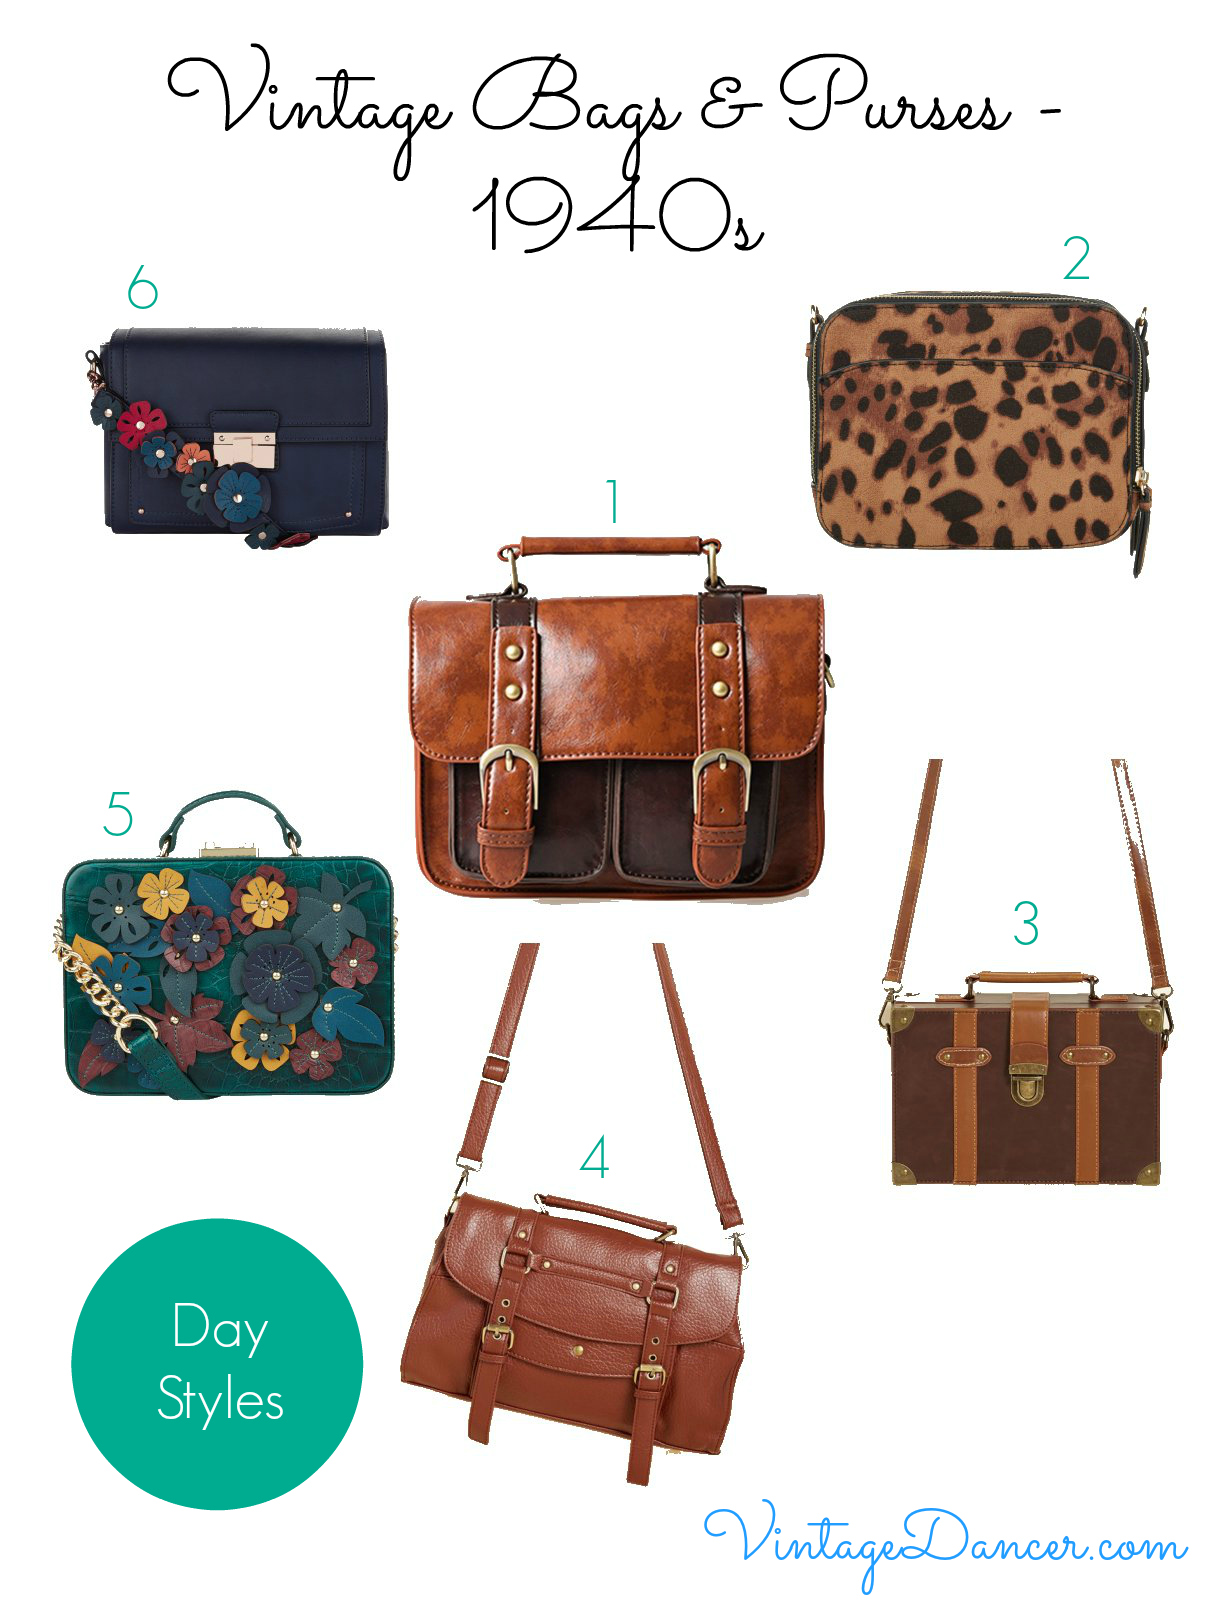 1940s Handbags and Purses History